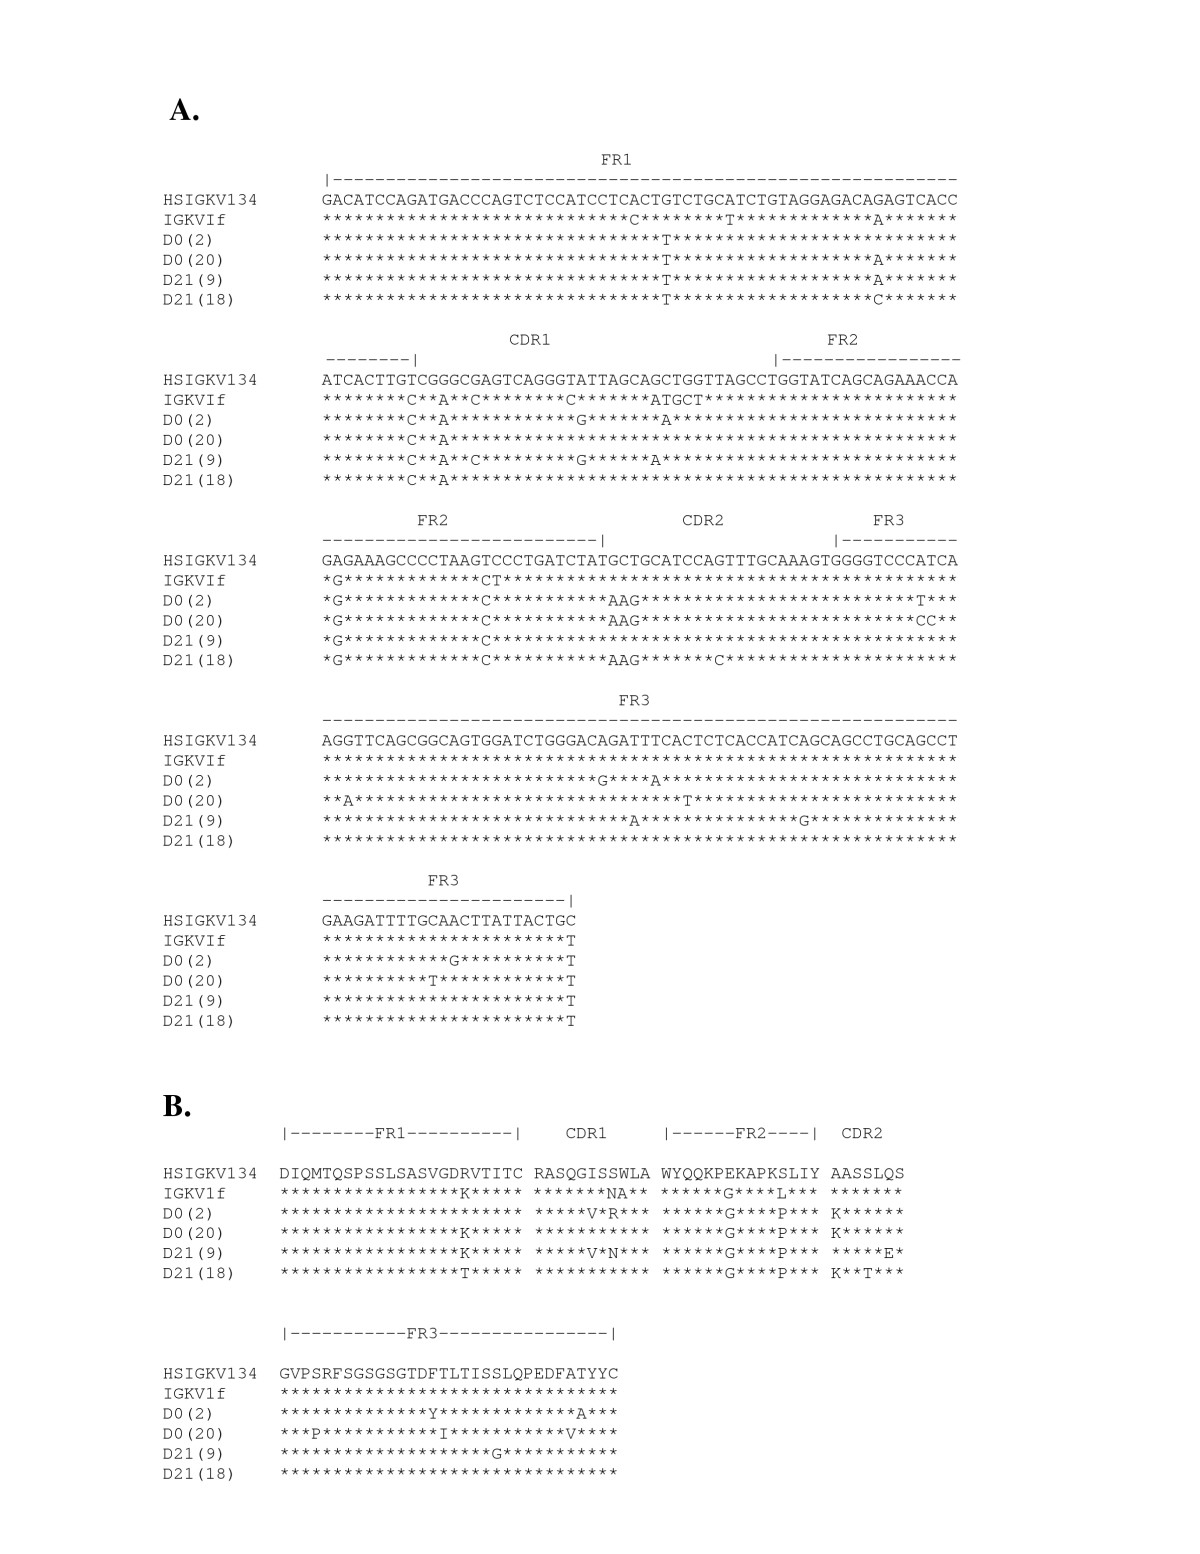 https://static-content.springer.com/image/art%3A10.1186%2F1471-2172-8-3/MediaObjects/12865_2006_Article_117_Fig3_HTML.jpg